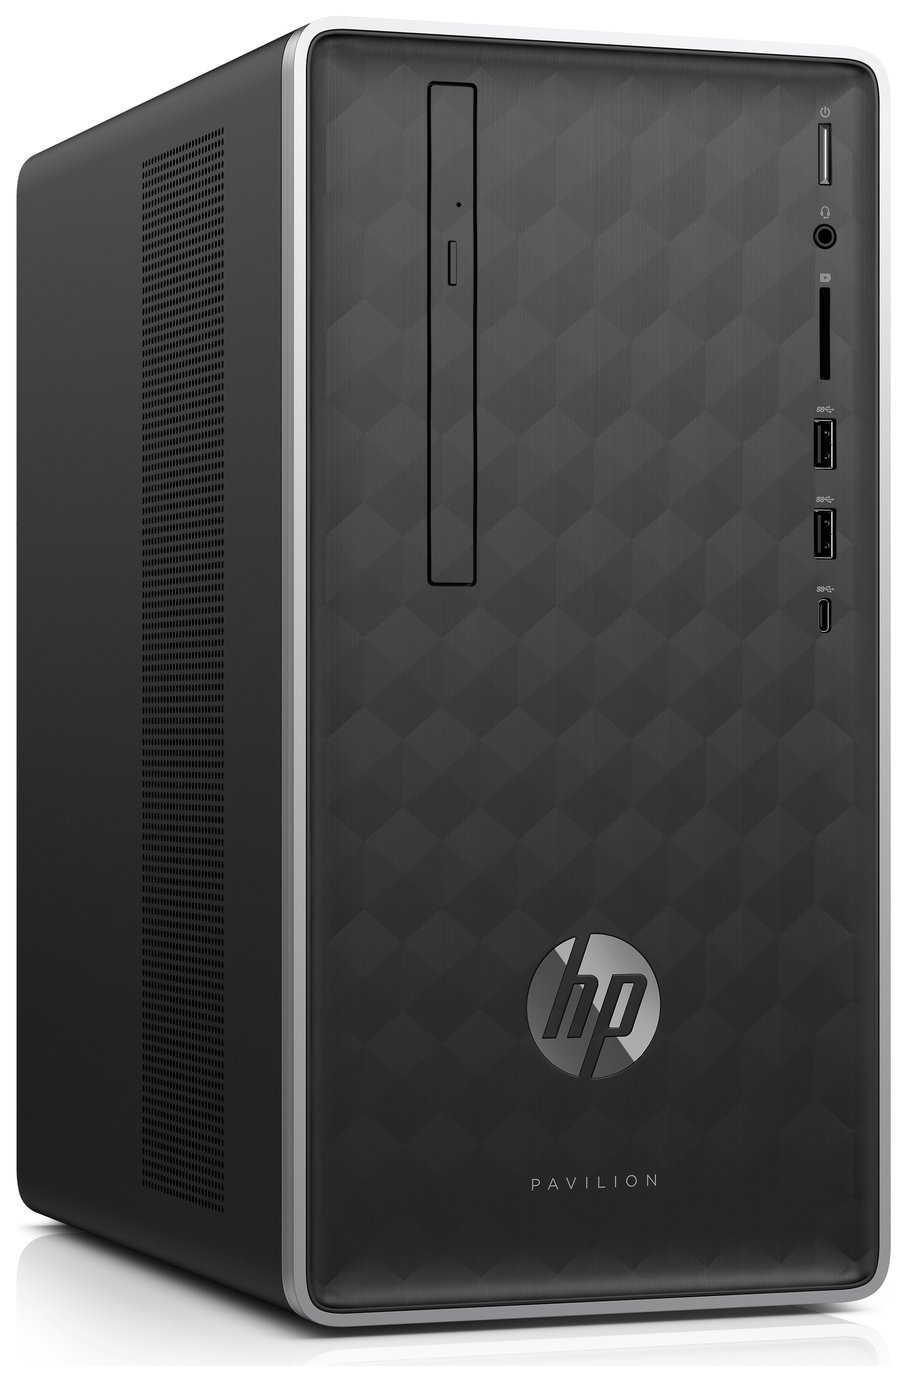 HP Pavilion Celeron 4GB 1TB Desktop PC - Black from HP